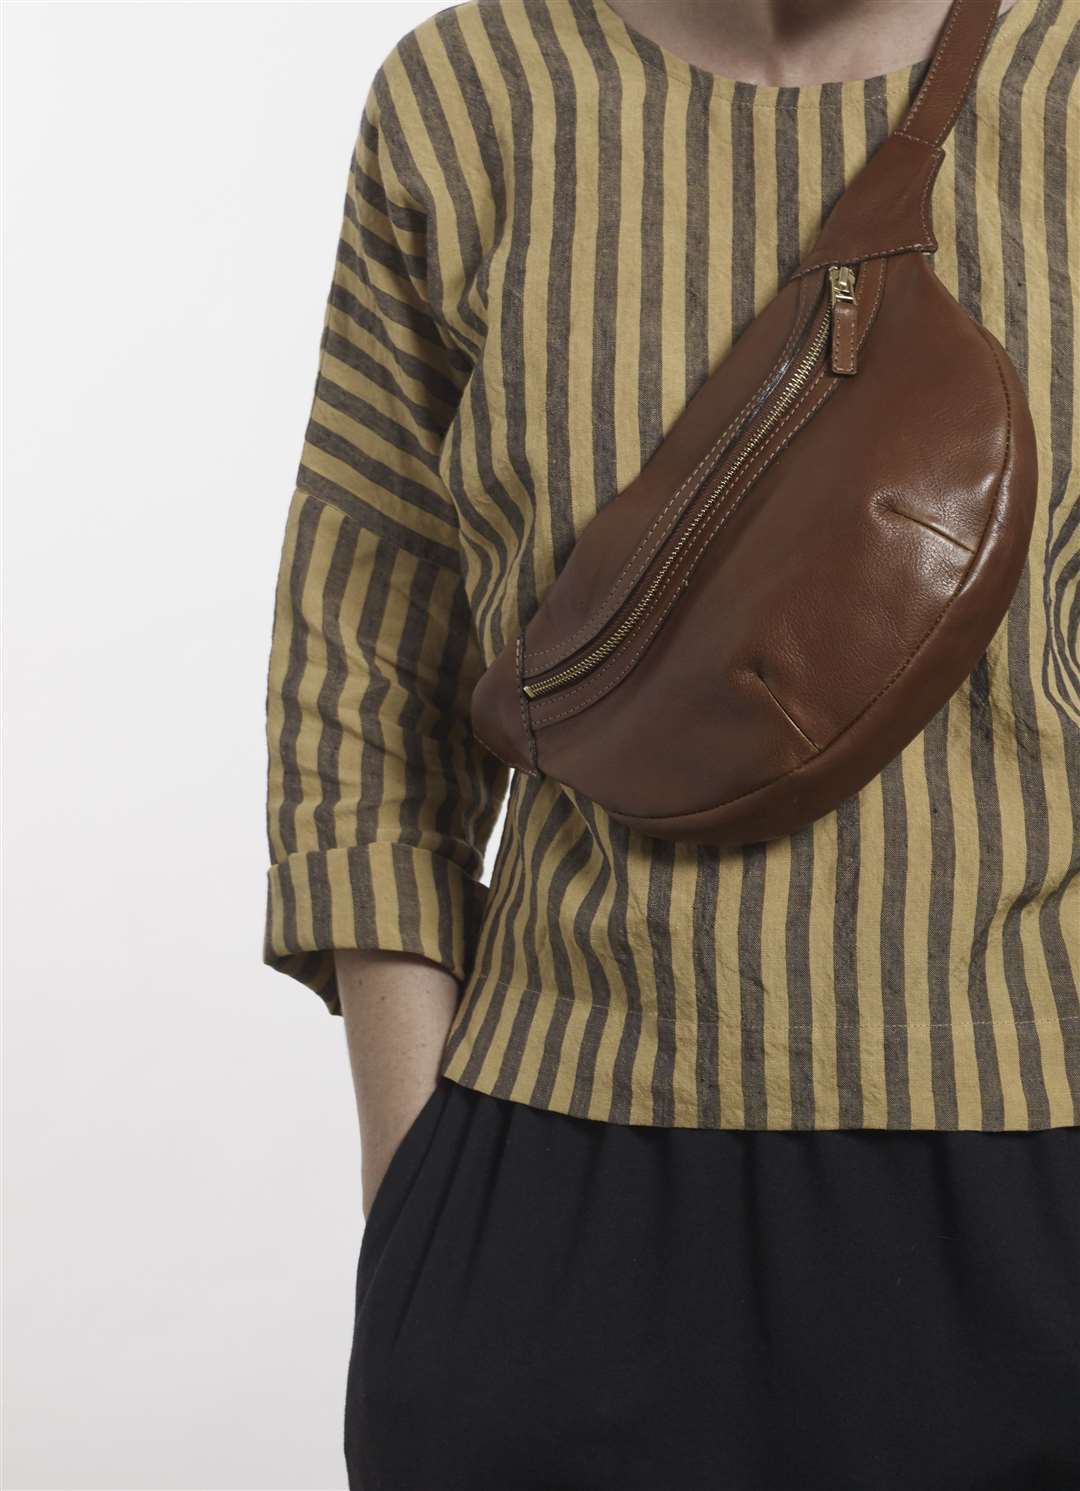 M.Hulot Lowe Bumbag in Conker, £175, and Parkers Striped Batwing top, £140, mhulot.co.uk (32921608)